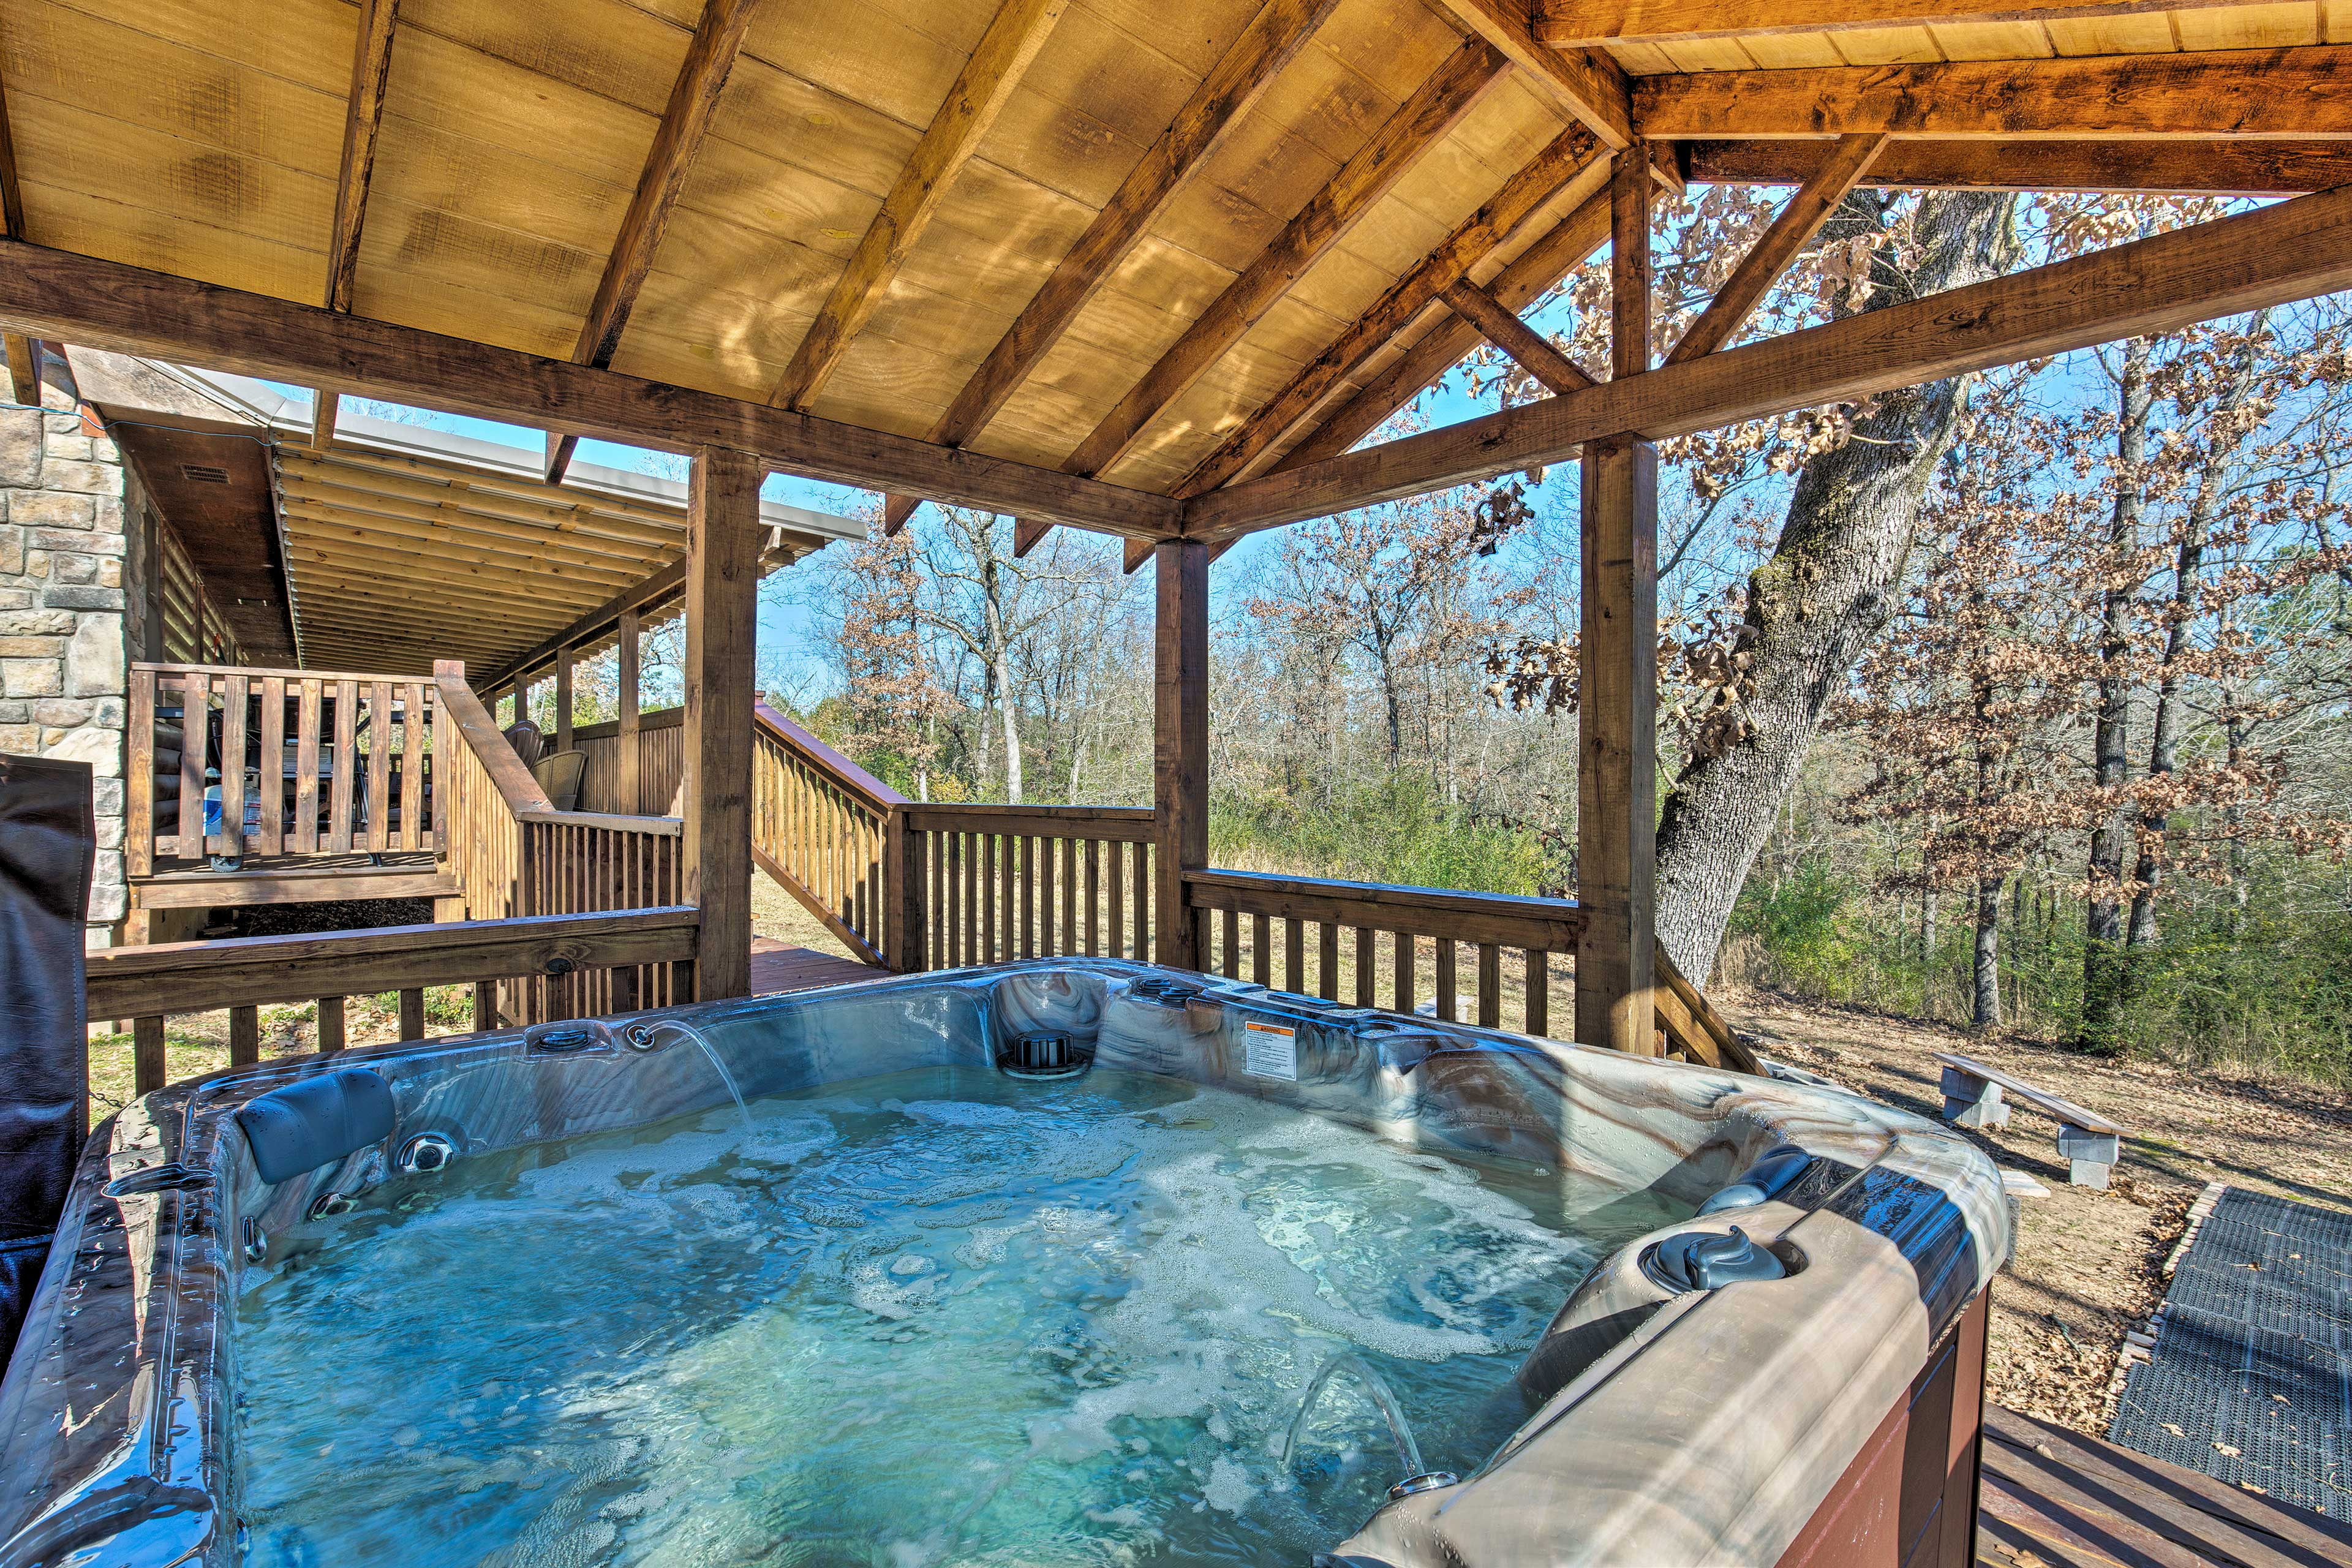 The hot tub has a jet system and plenty of fun features.